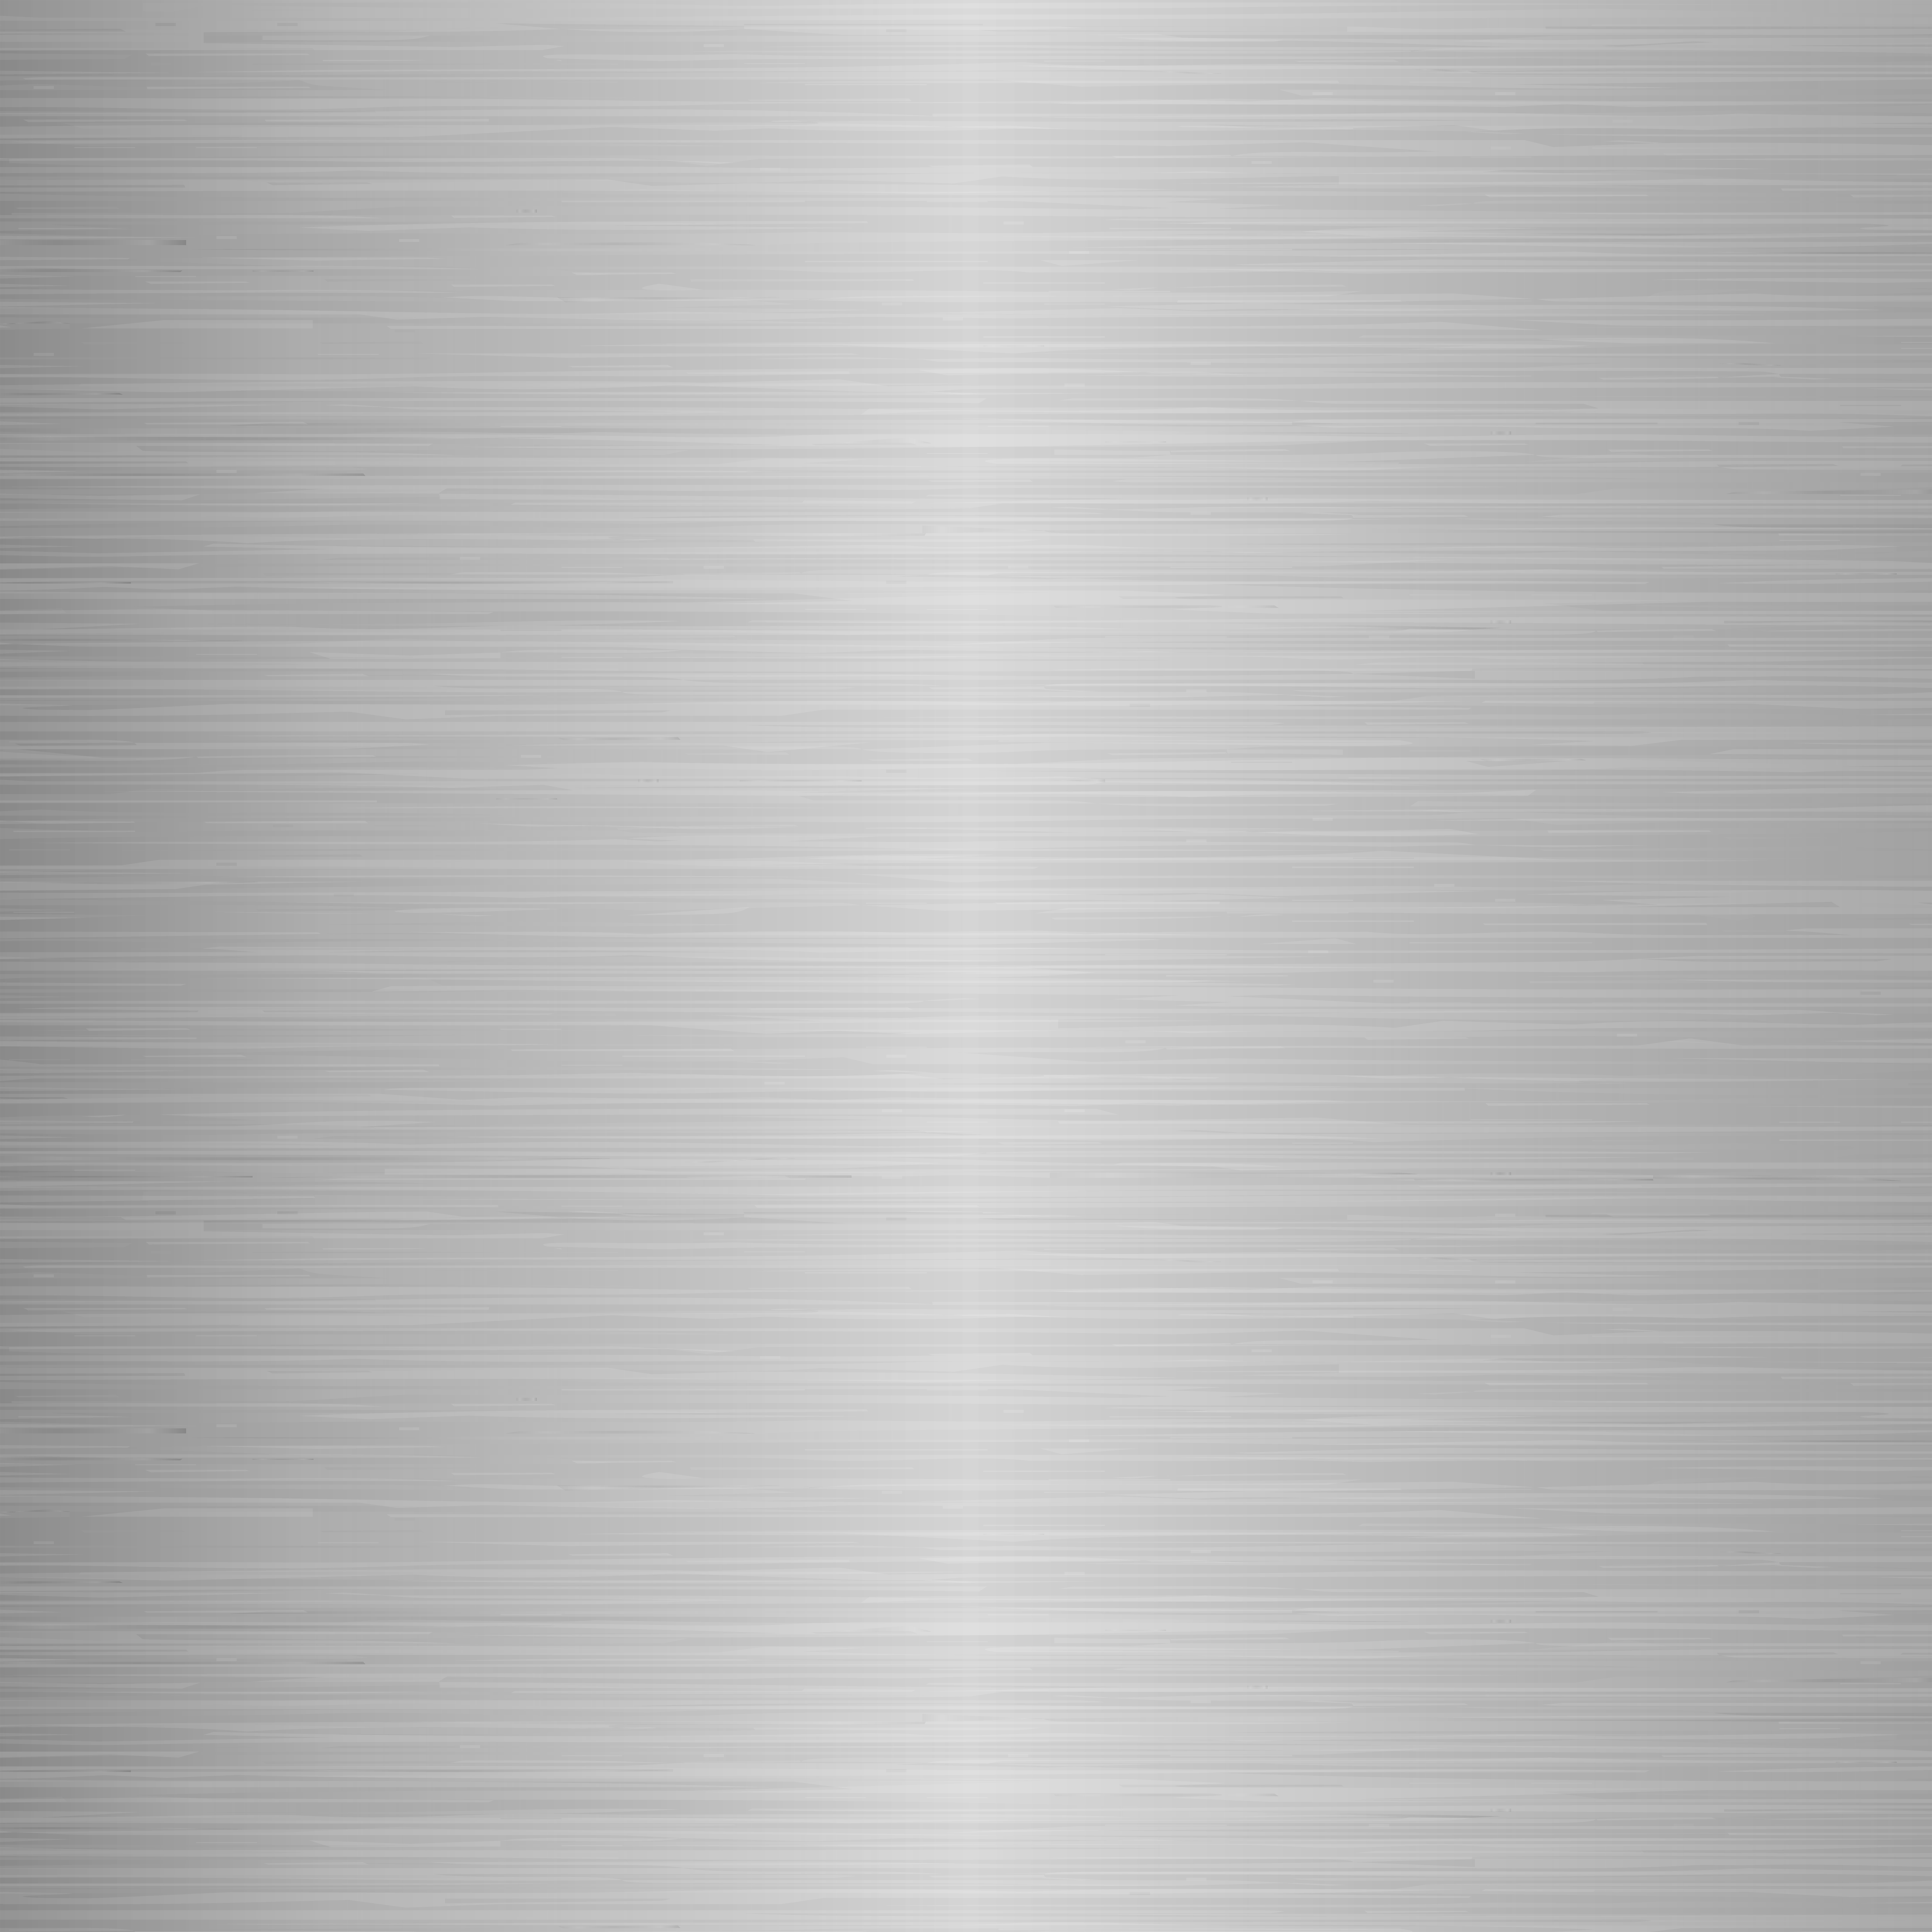 Silver Metal Background | Gallery Yopriceville - High-Quality ... vector transparent download